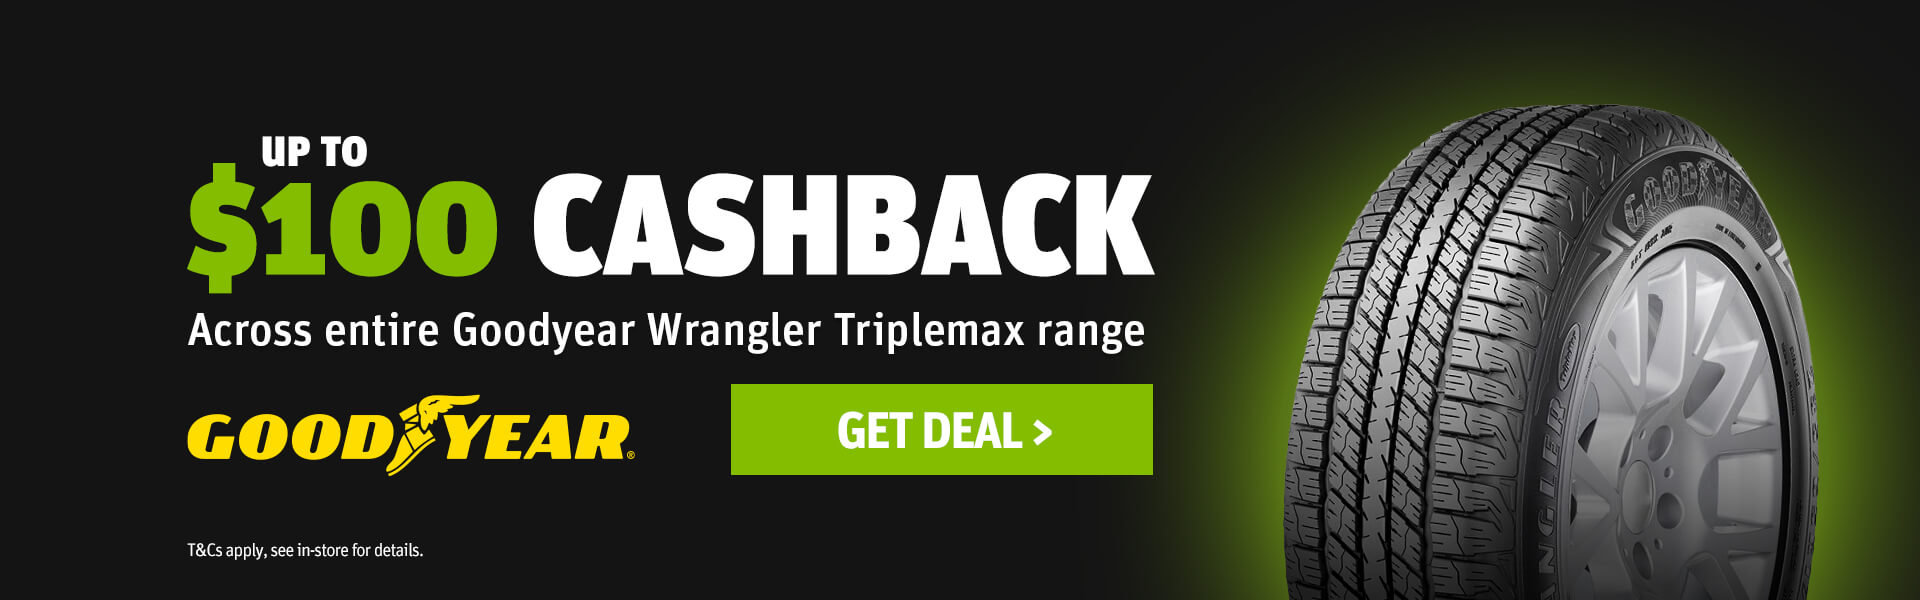 Up to $100 Cashback across entire Goodyear Wrangler Triplemax range